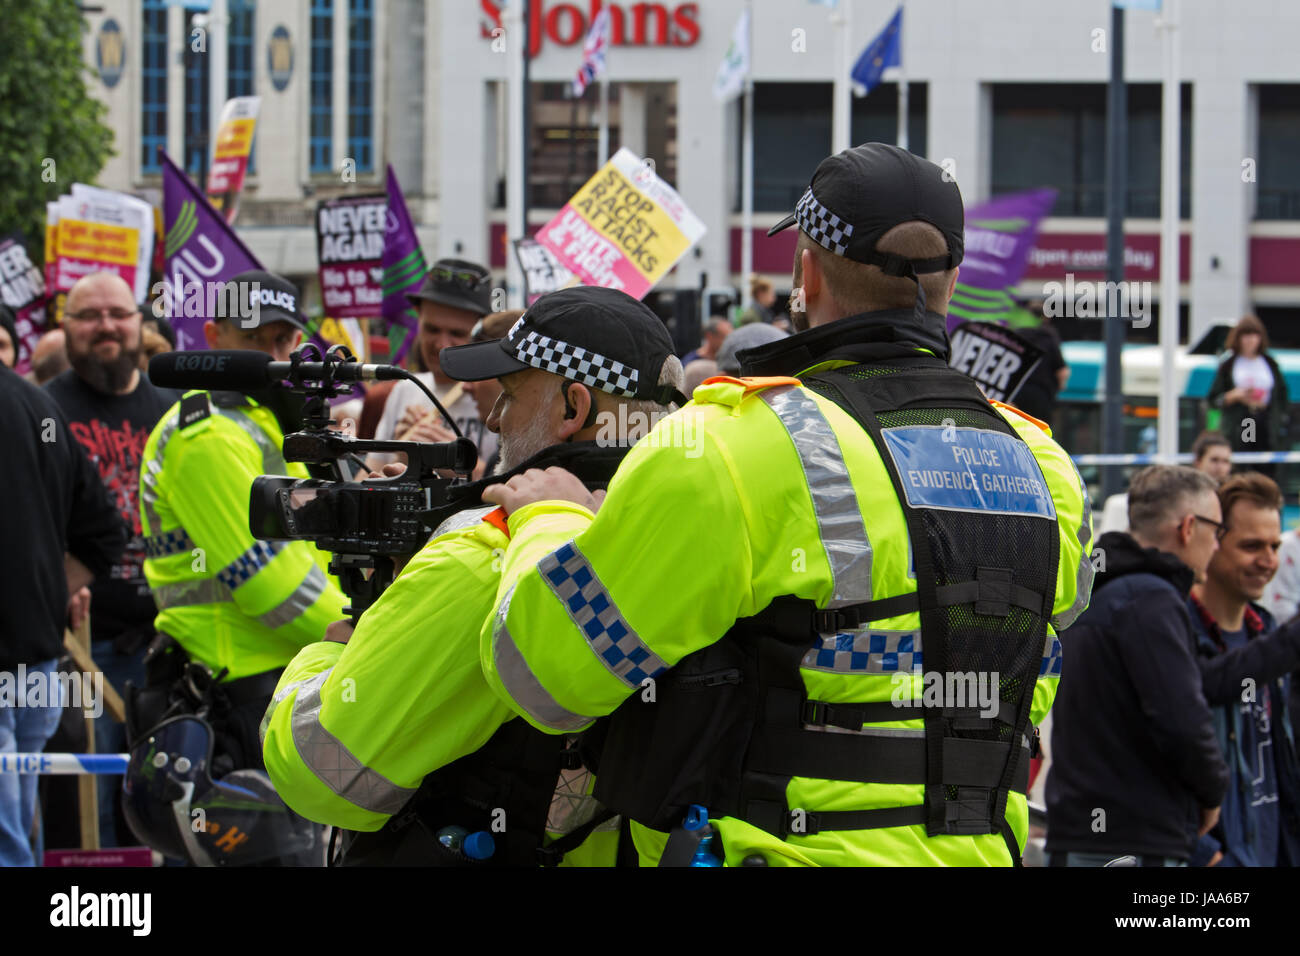 Policeman gathers video evidence during a rally by the far right group English Defence League and a protest by Anti - Stock Image